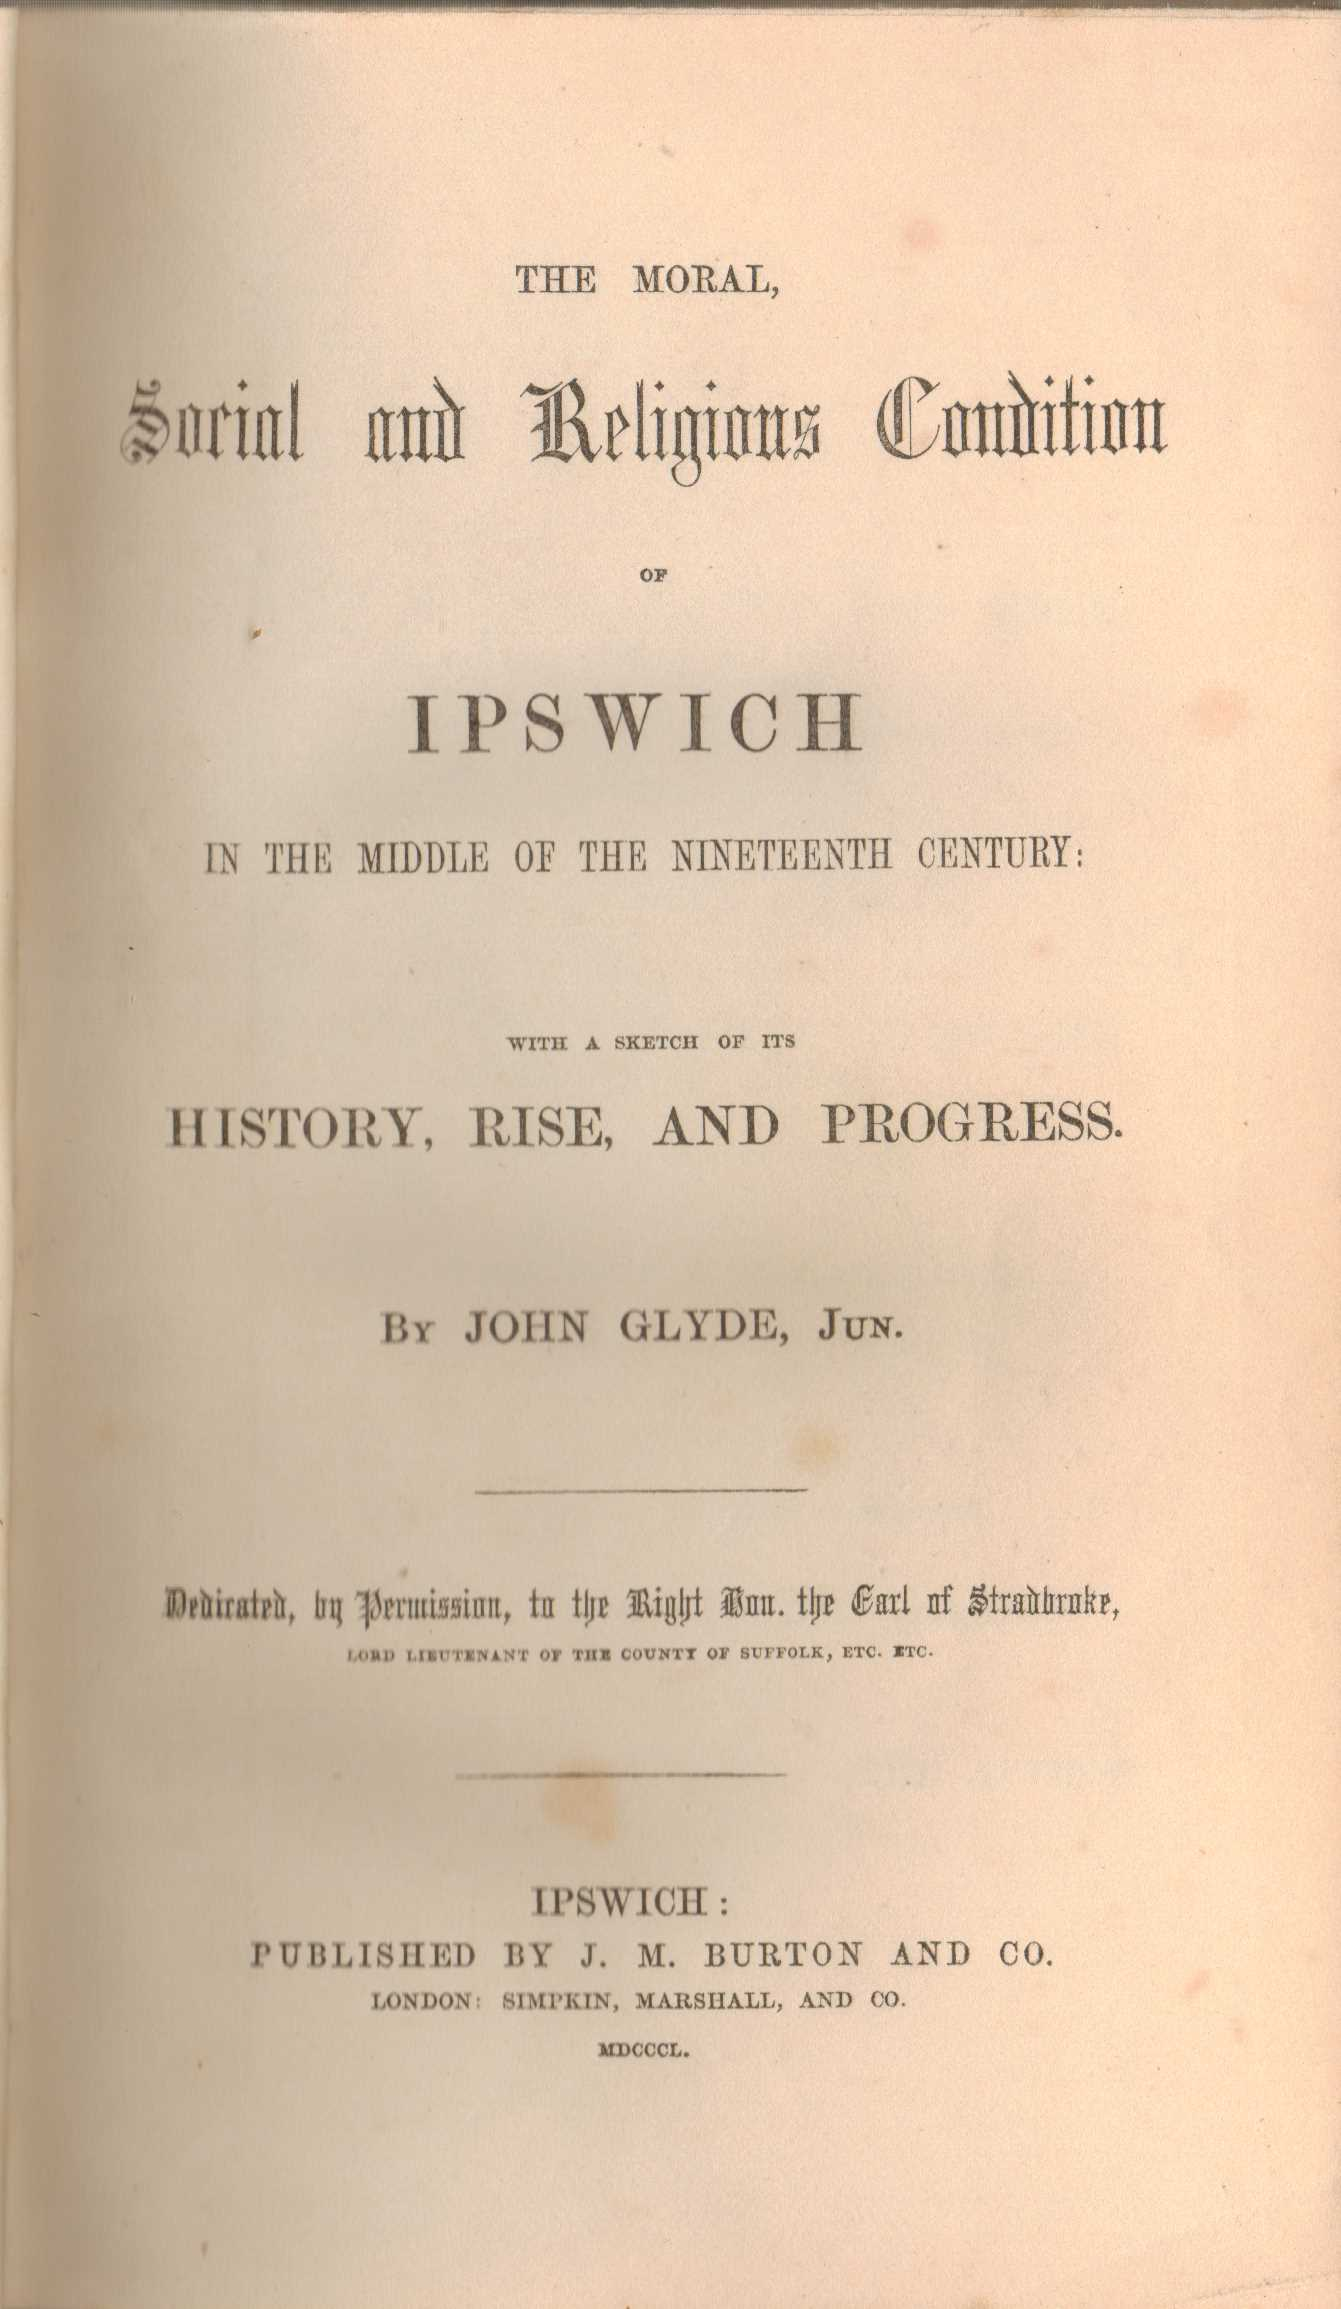 Image for The Moral, Social and Religious Condition of Ipswich in the Middle of the Nineteenth Century; with a sketch of its History, Rise, and Progress